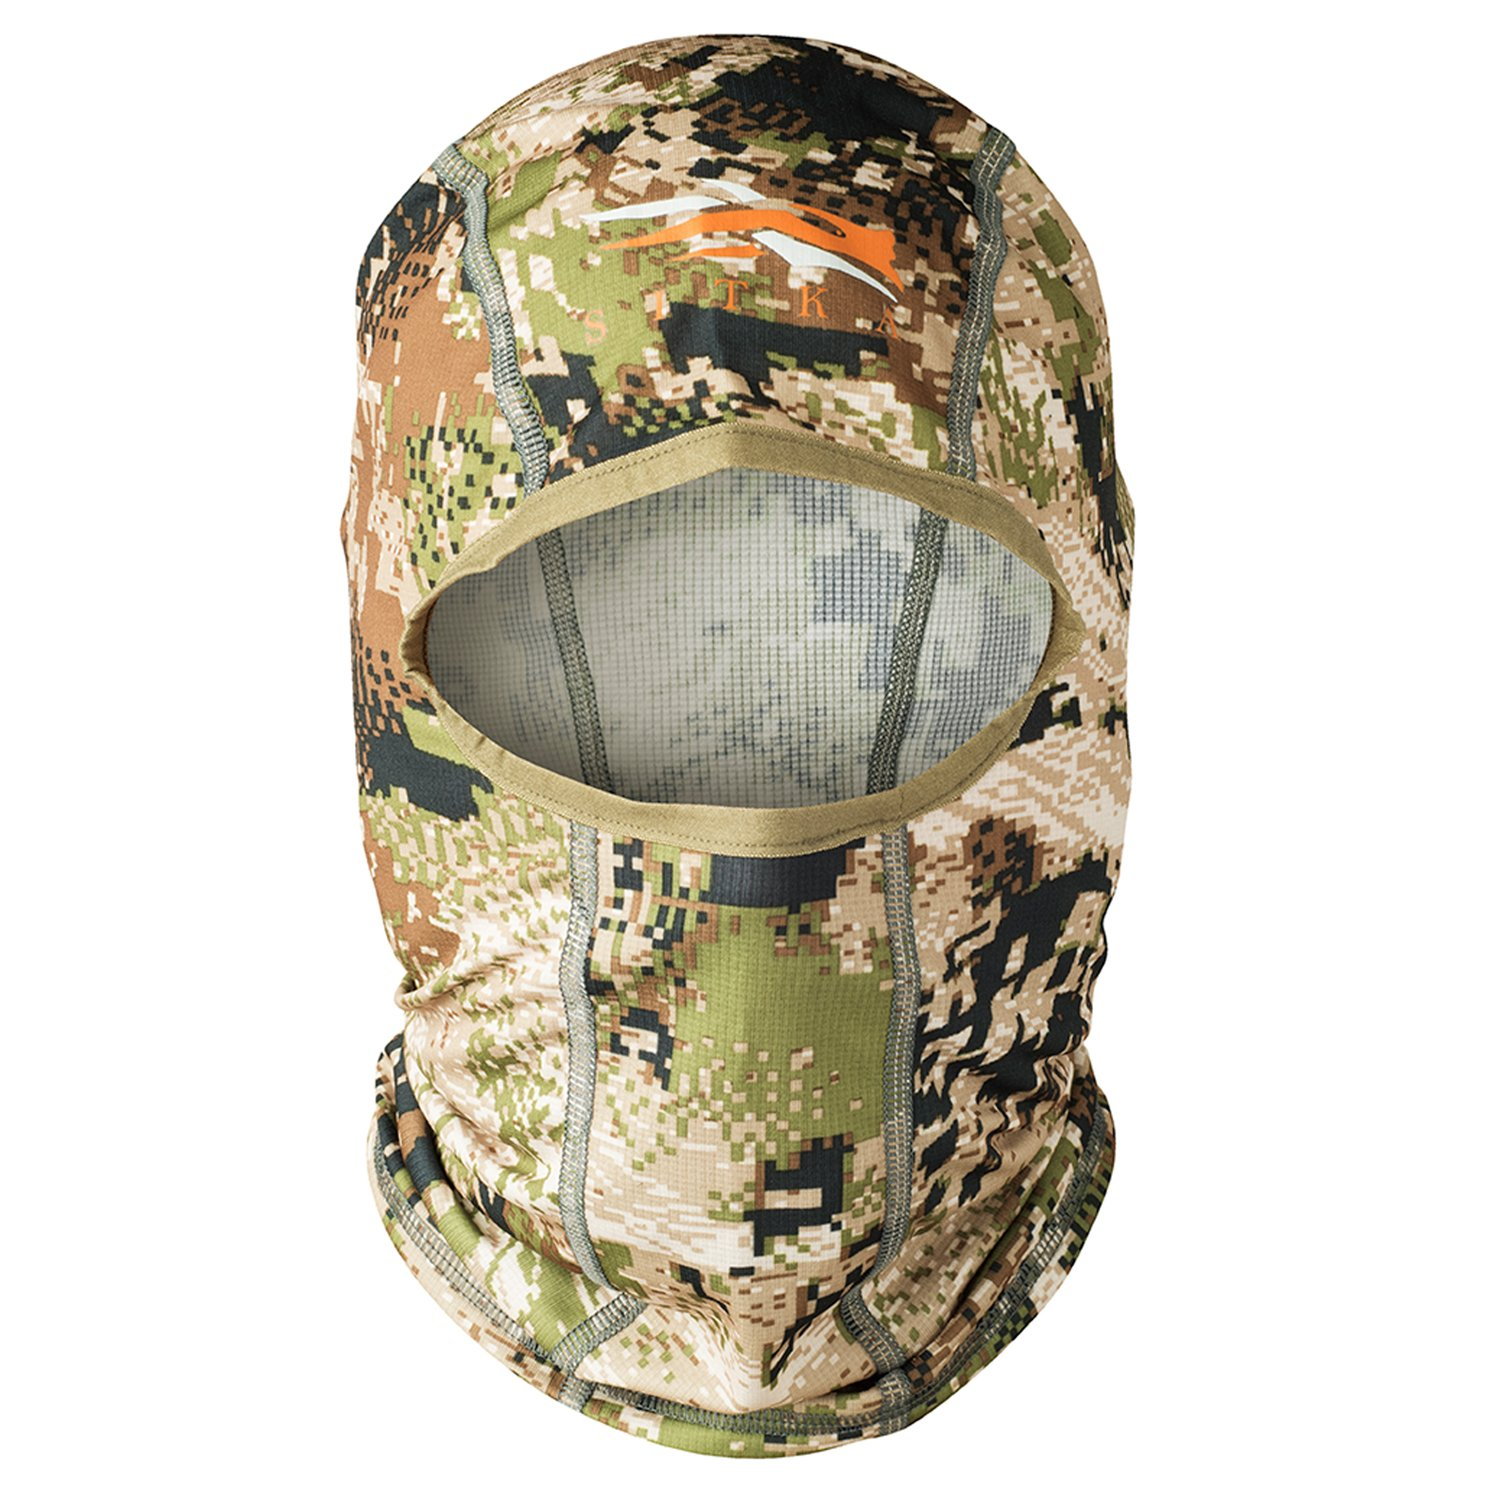 SITKA Gear Lightweight Balaclava Optifade Subalpine One Size Fits All - Discontinued by SITKA (Image #1)